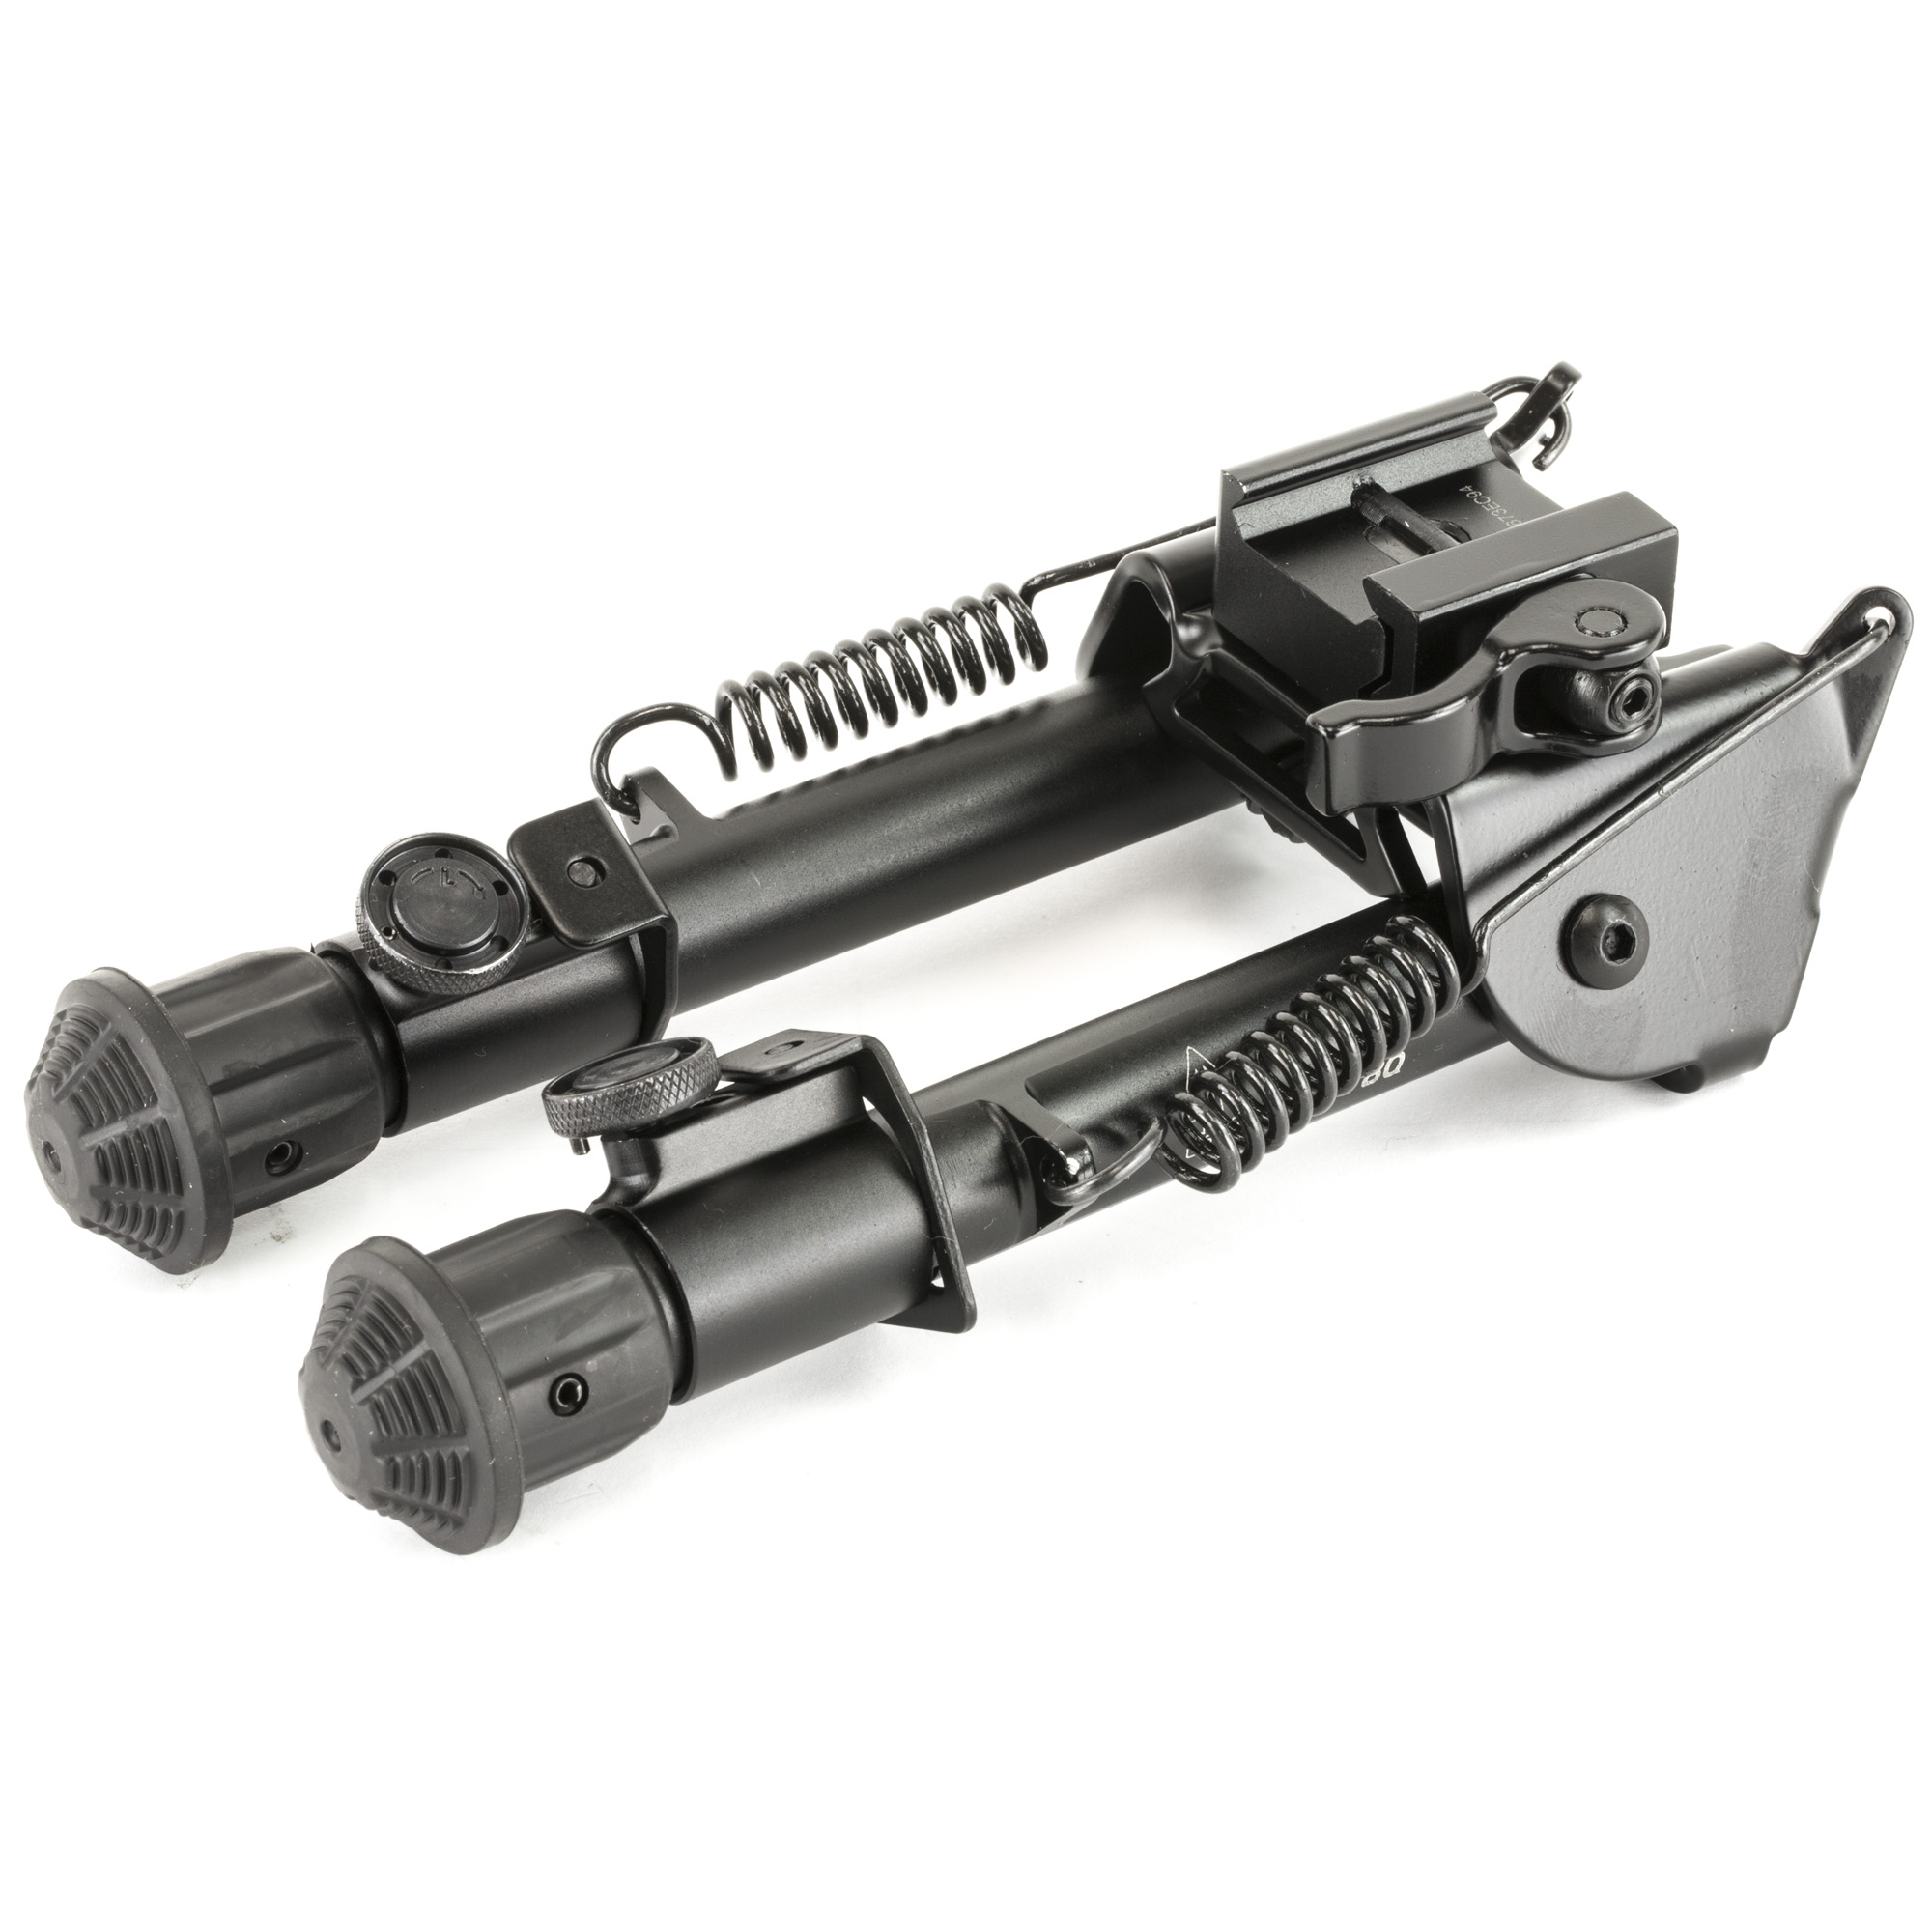 """Heavy duty tactical bipod adjusts in height to meet the needs of elite tactical teams. Features aluminum construction"""" quick detach lever lock"""" three extension notches to adjust legs from 5.9"""" to 7.3"""" in height"""" retraction button allows legs to be folded out of your way"""" non-slip rubberized feet and it allows you to pan for your target. Mounts to your quad rail or using the included swivel stud and weighs only 12.8 ounces."""